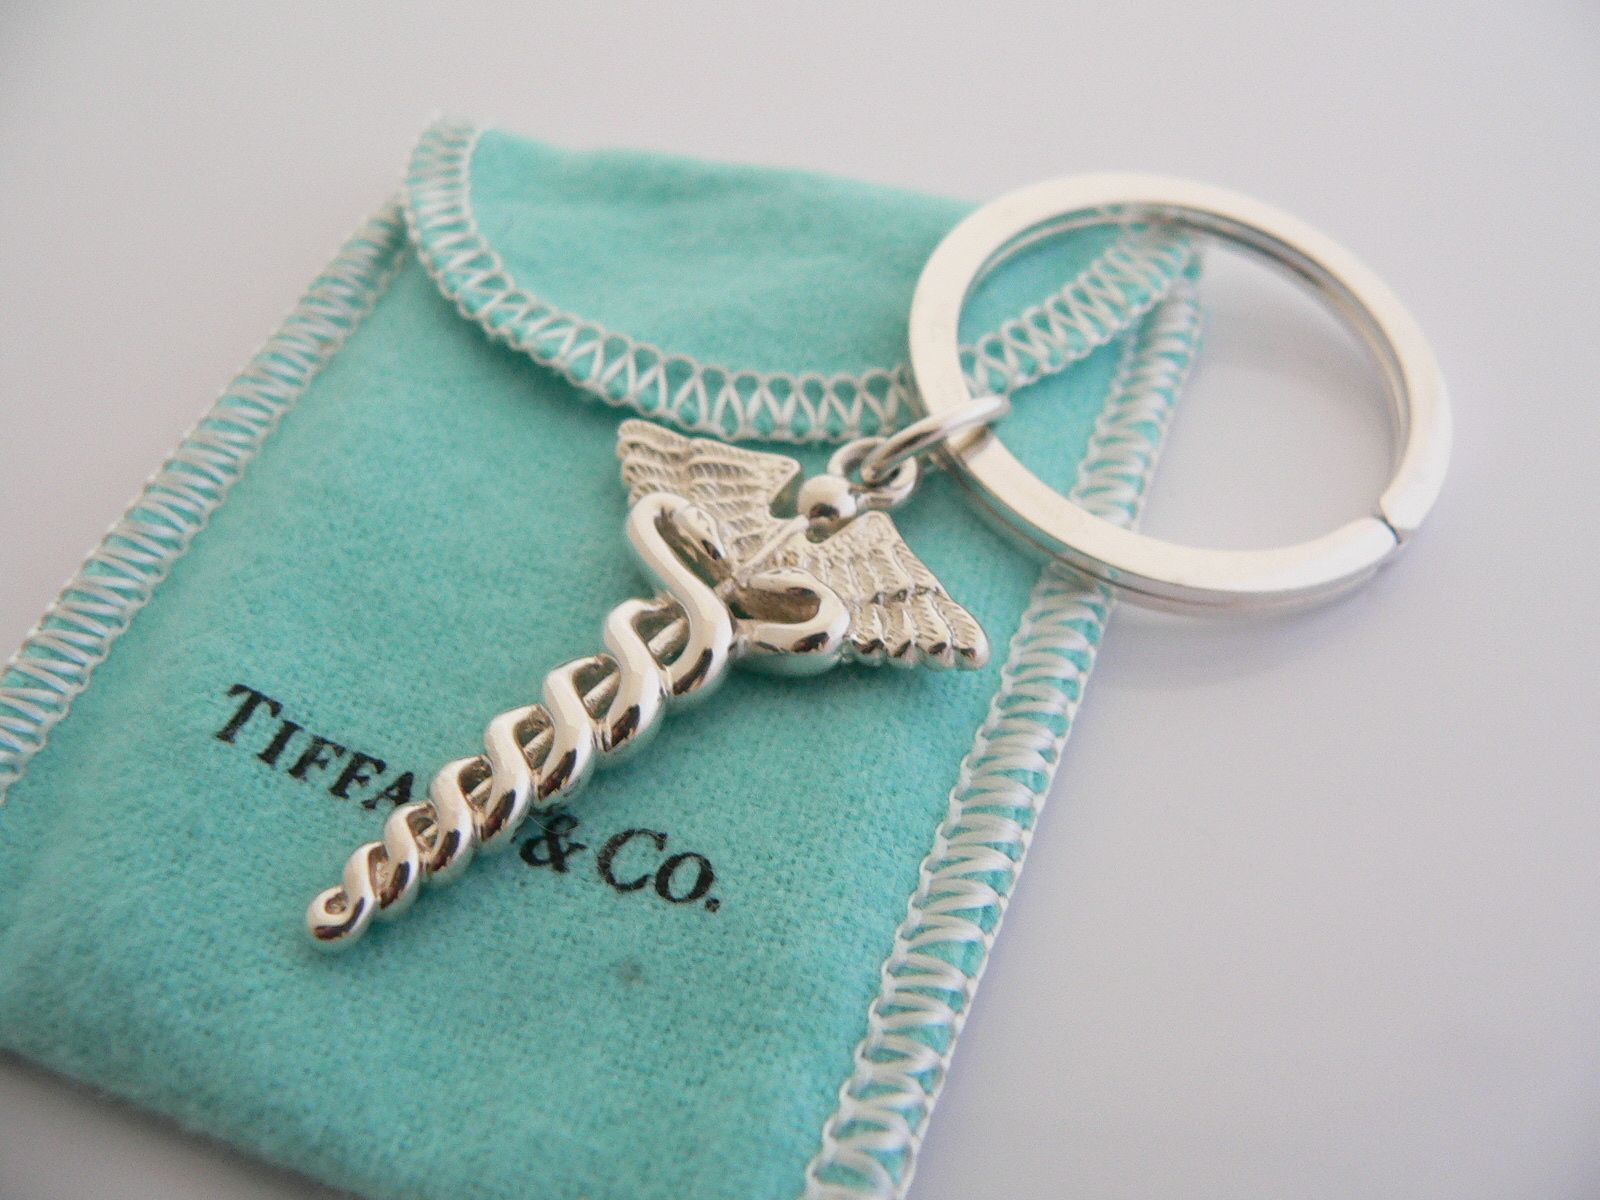 Best ideas about Nursing School Graduation Gift Ideas . Save or Pin Beautiful Tiffany & Co Keychain Great idea for grad Now.